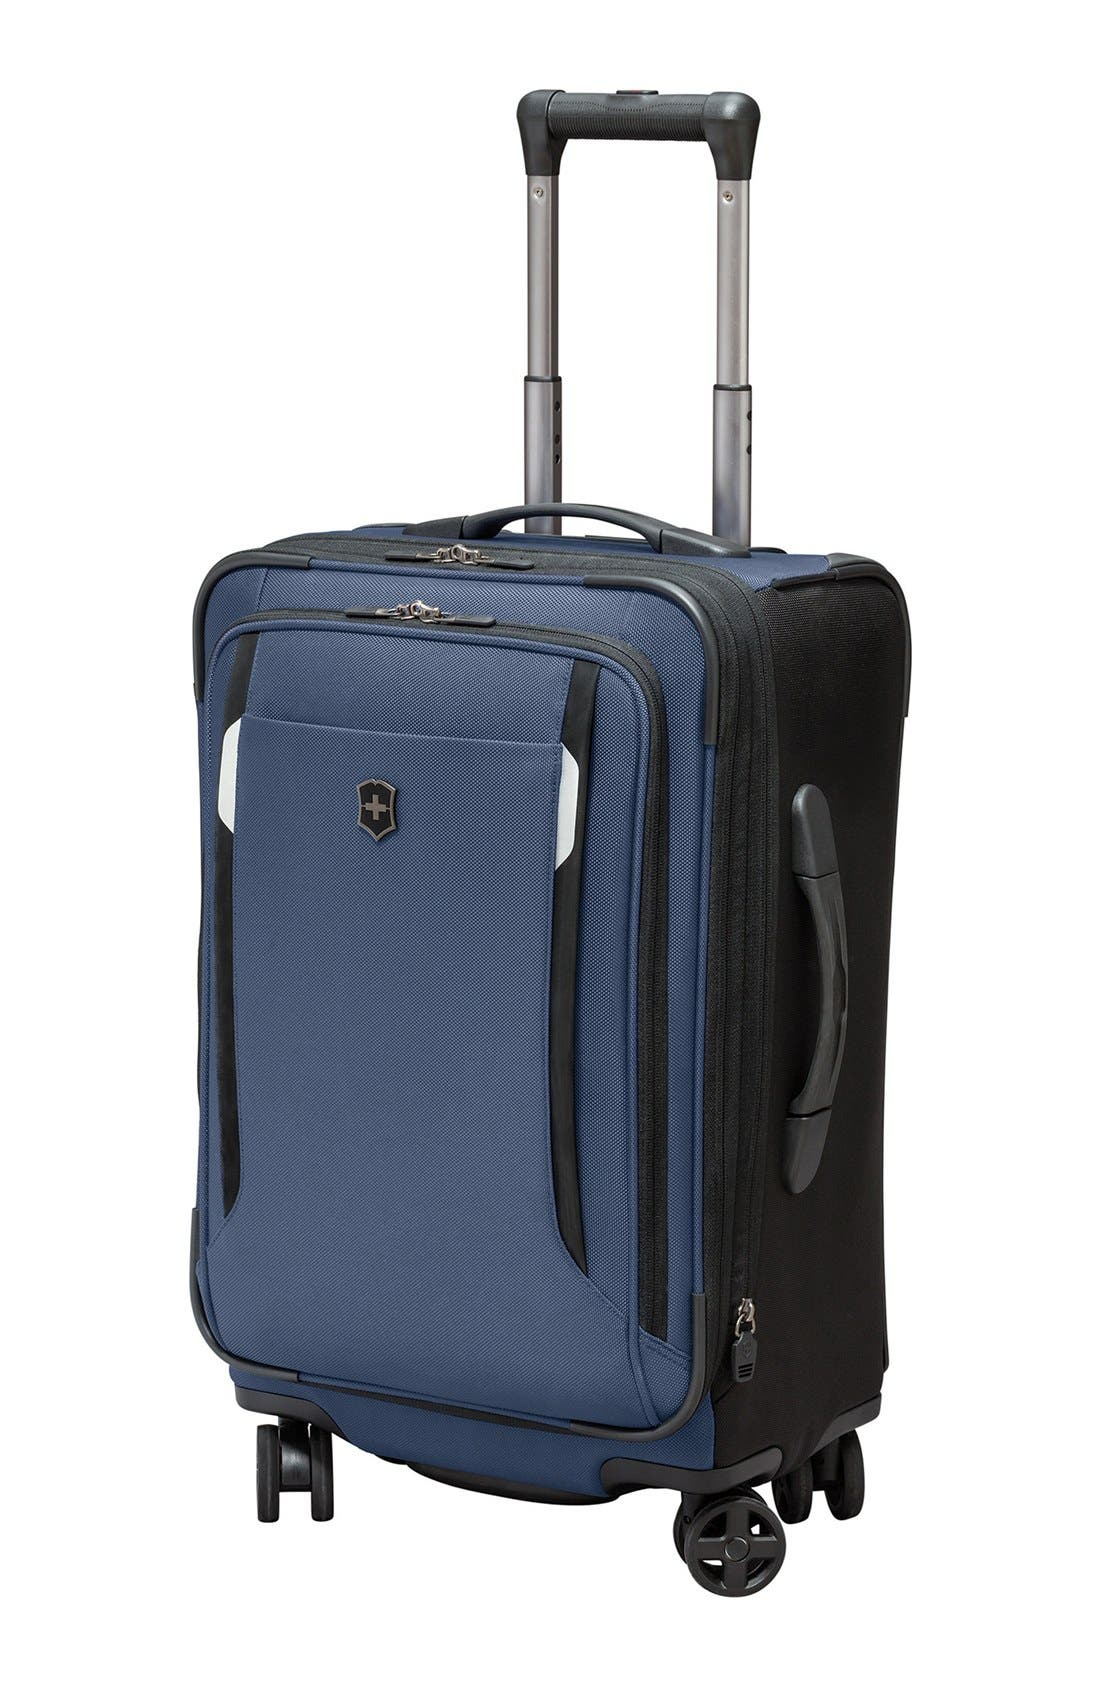 WT 5.0 Dual Caster Wheeled 22-Inch Carry-On,                             Alternate thumbnail 3, color,                             420